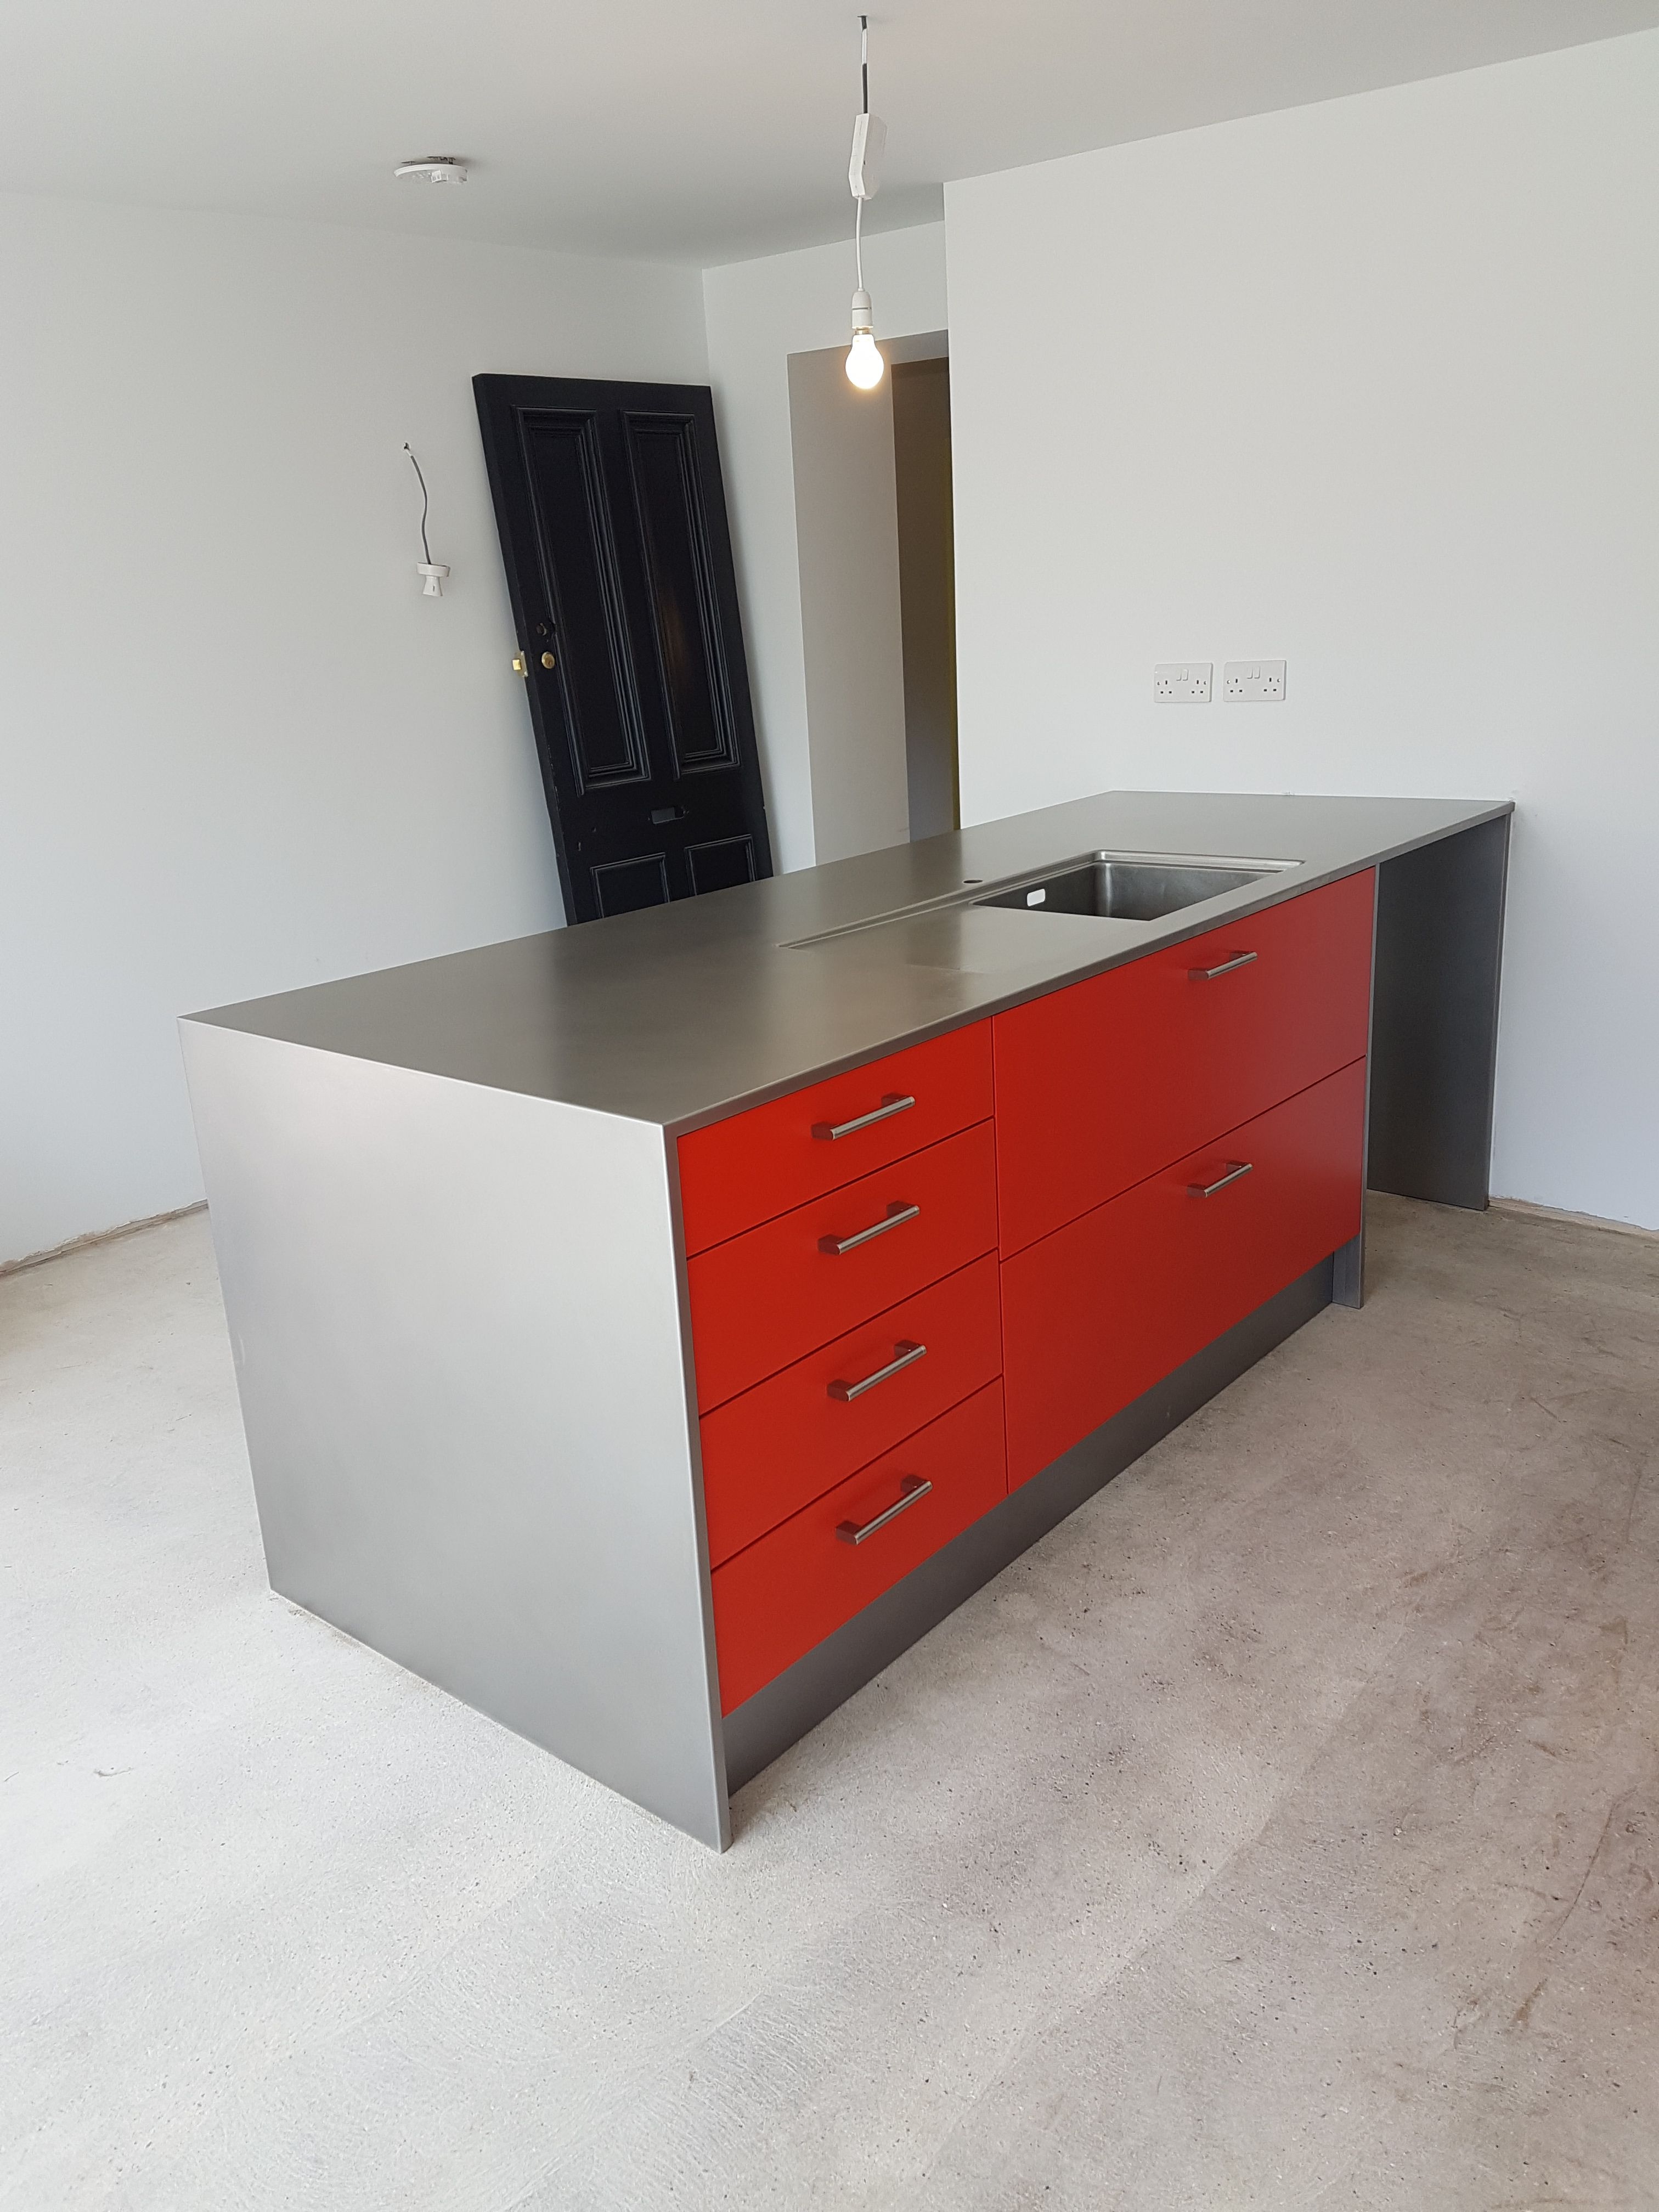 Hybrid Stainless Steel Kitchen Installation With Powder Coated Red Door And Drawer Fascia Stainless Steel Kitchen Stainless Steel Cabinets Kitchen Installation